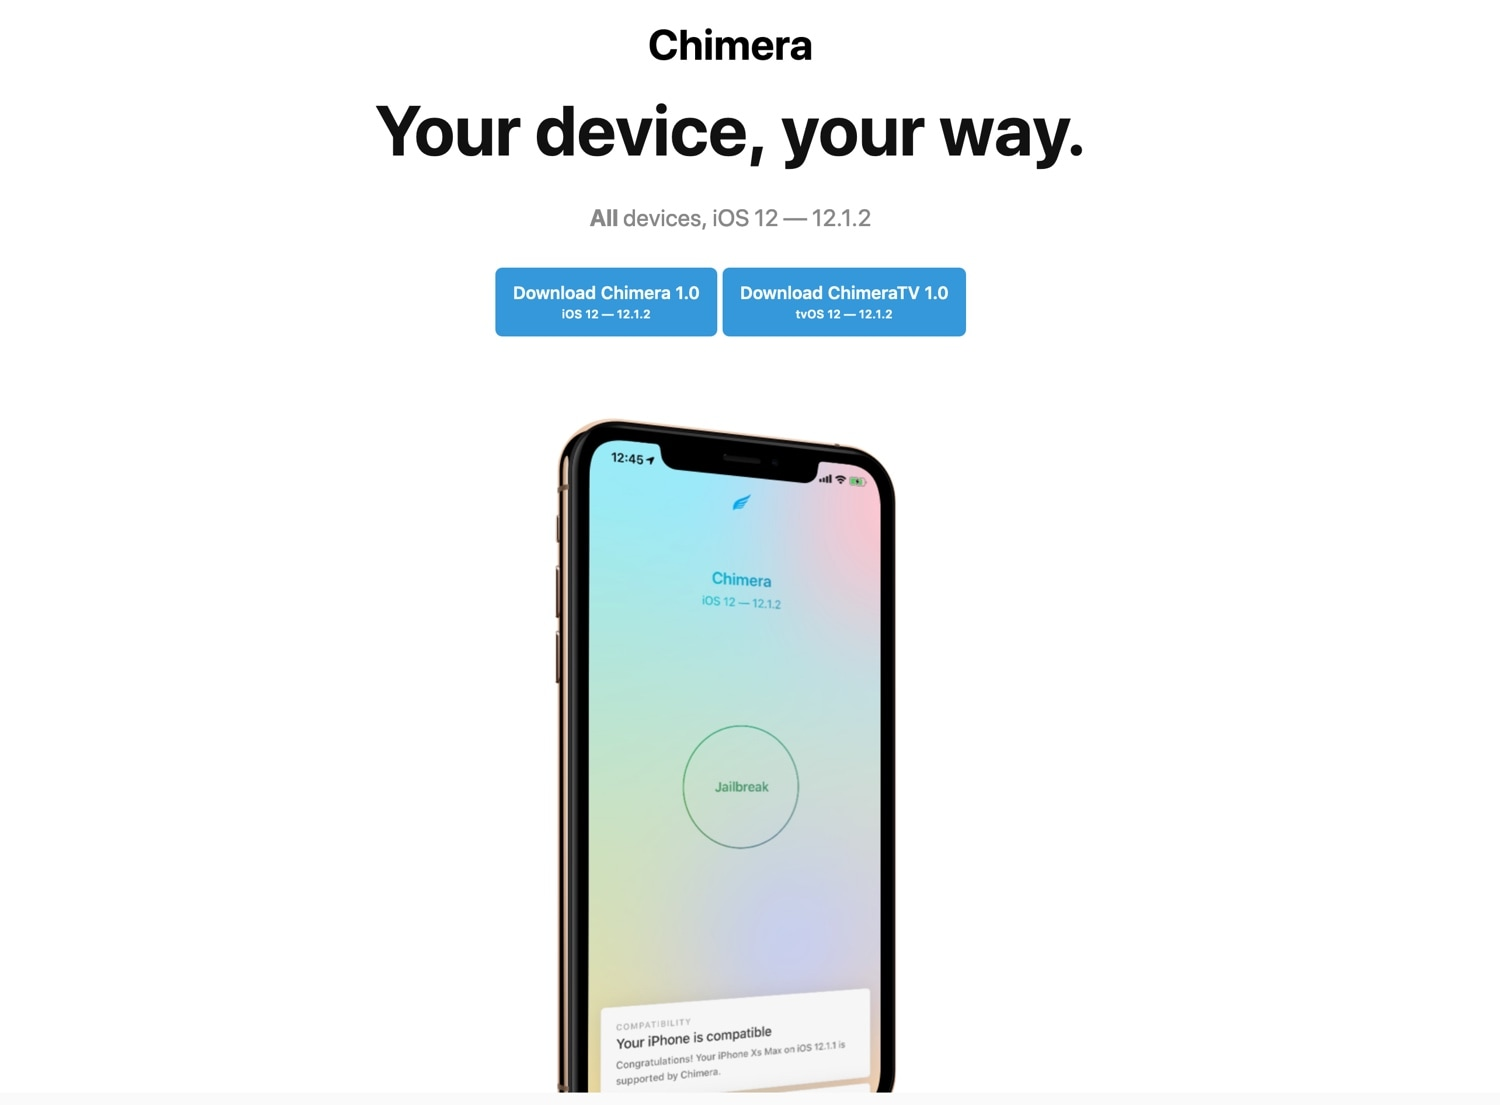 Electra Team releases Chimera jailbreak for iOS 12 0-12 1 2